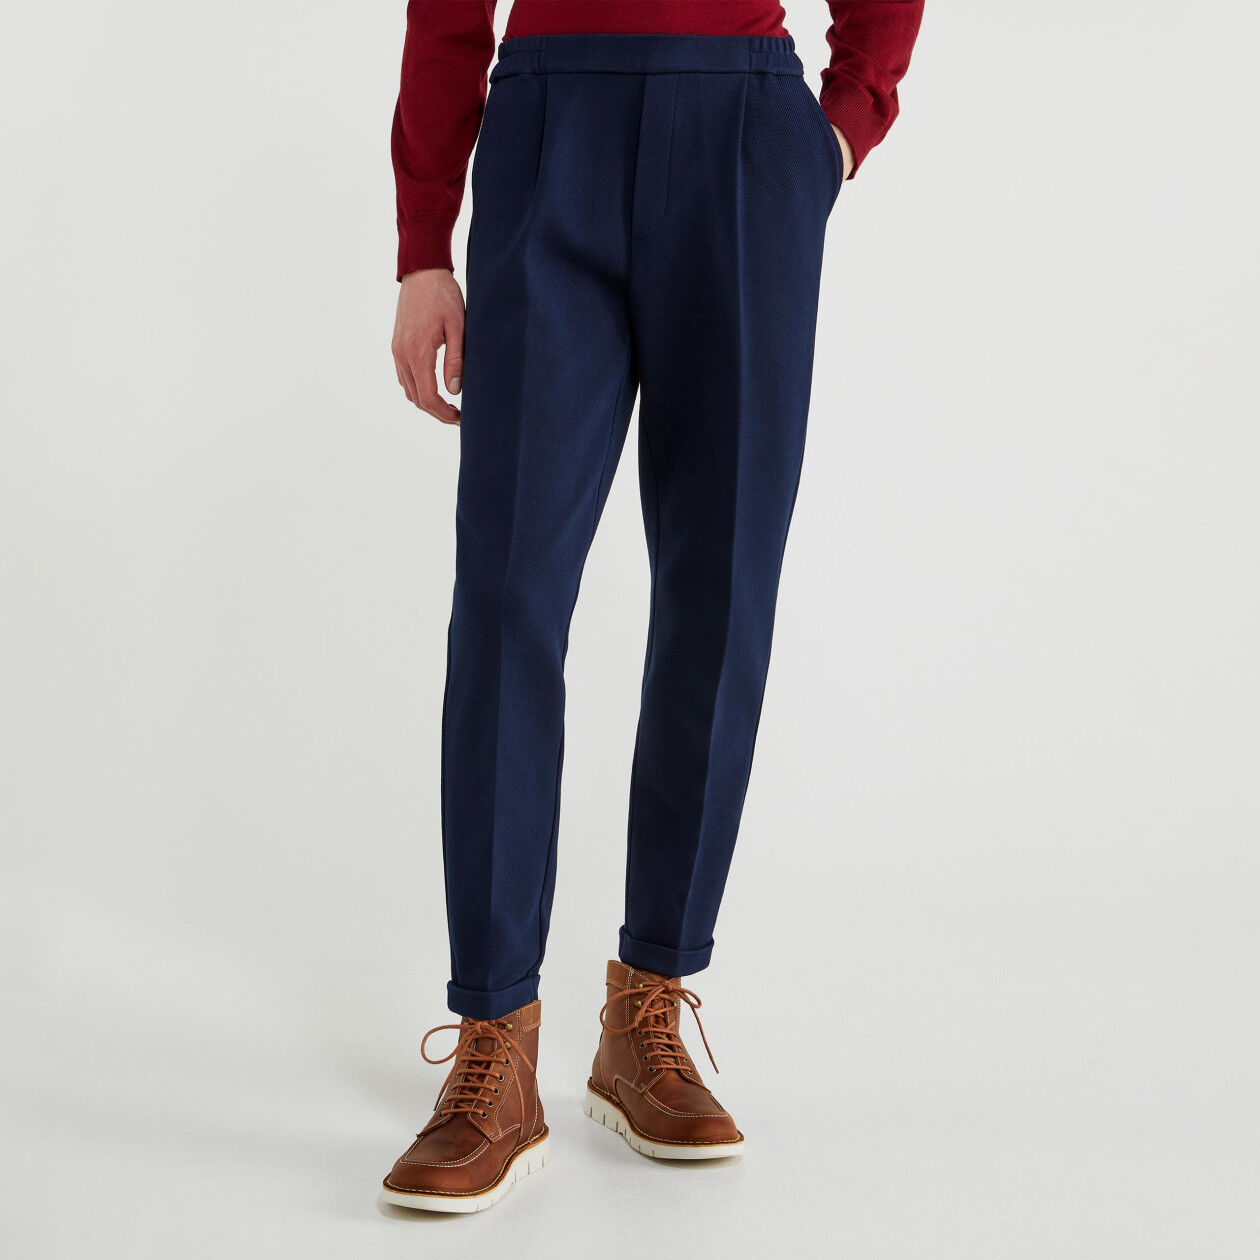 Trousers with cuffs